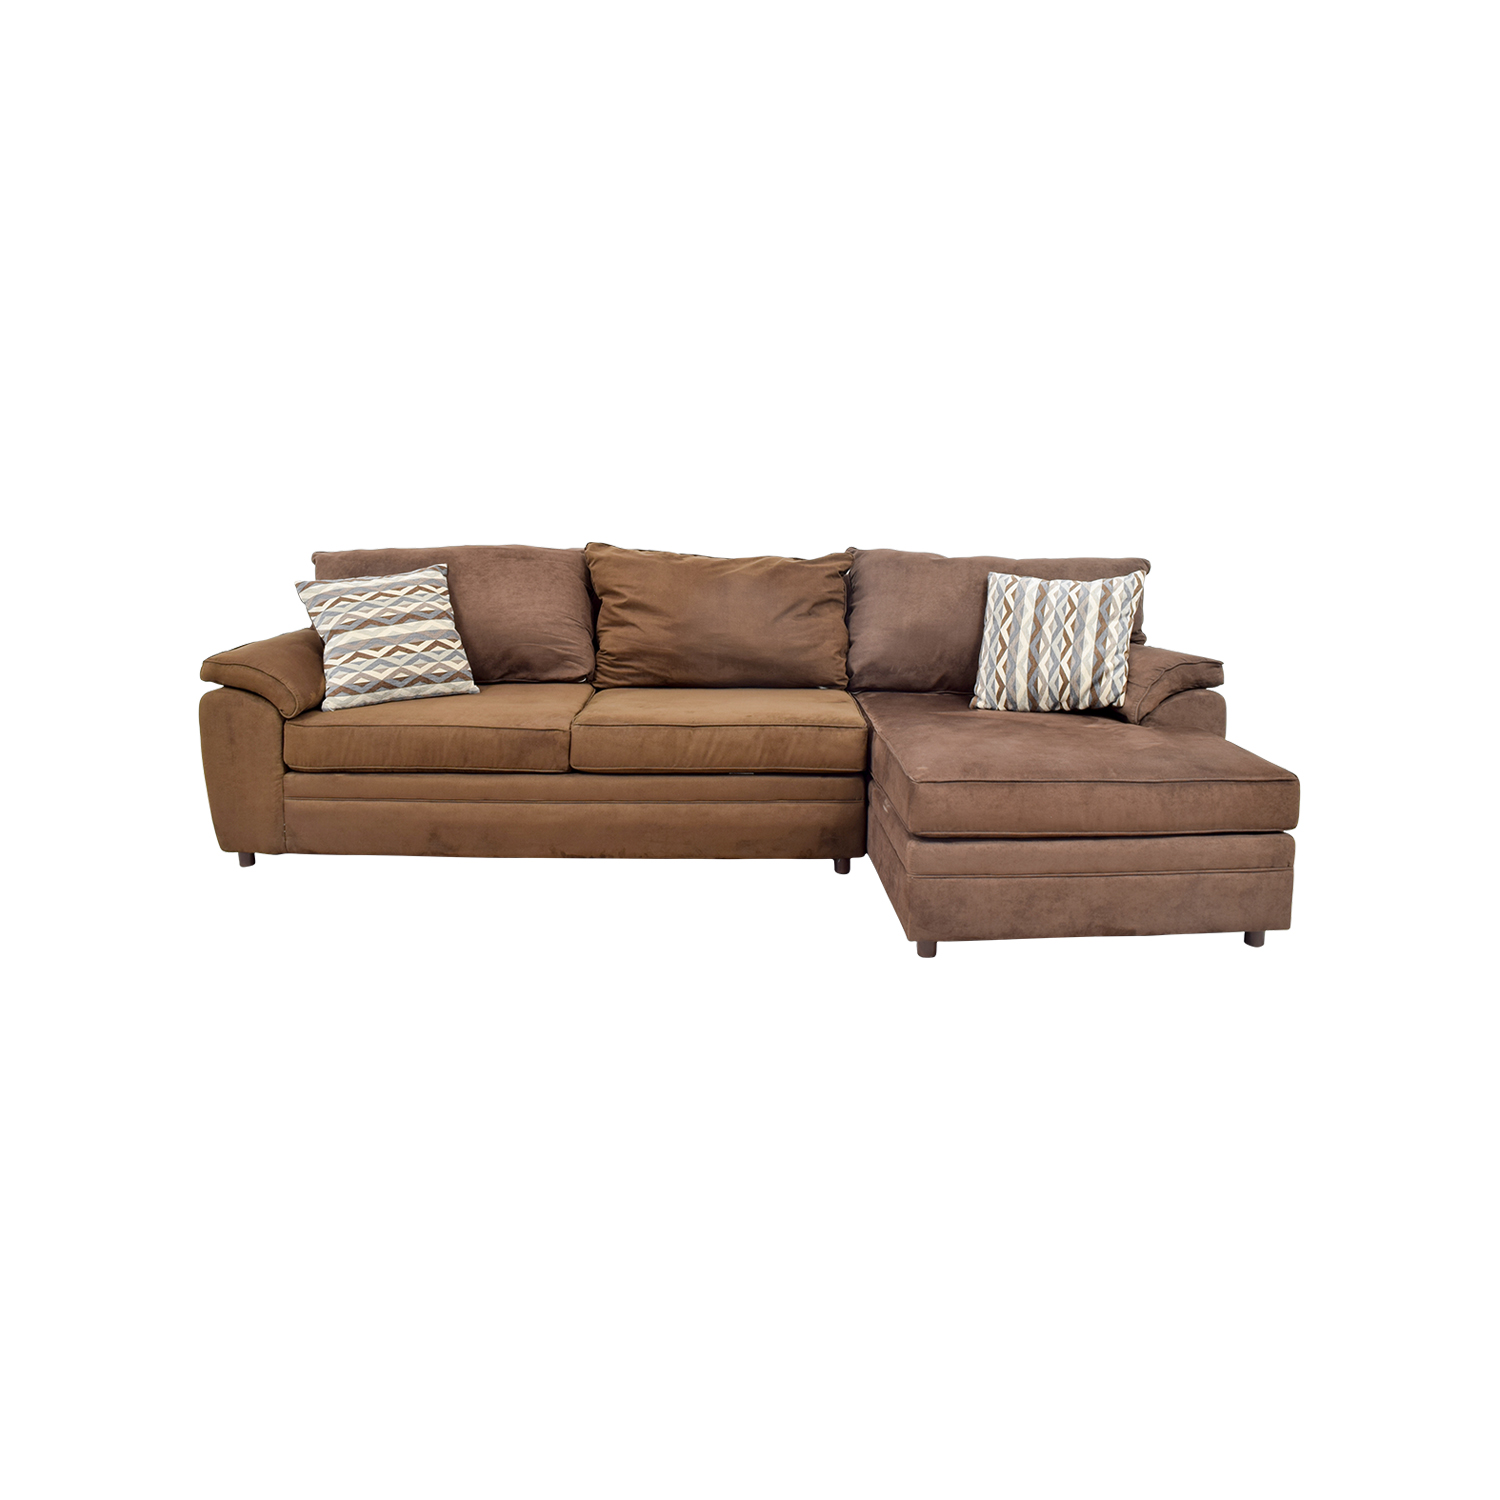 Sensational 46 Off Bobs Discount Furniture Bobs Furniture Brown Chaise Sectional Sofas Short Links Chair Design For Home Short Linksinfo